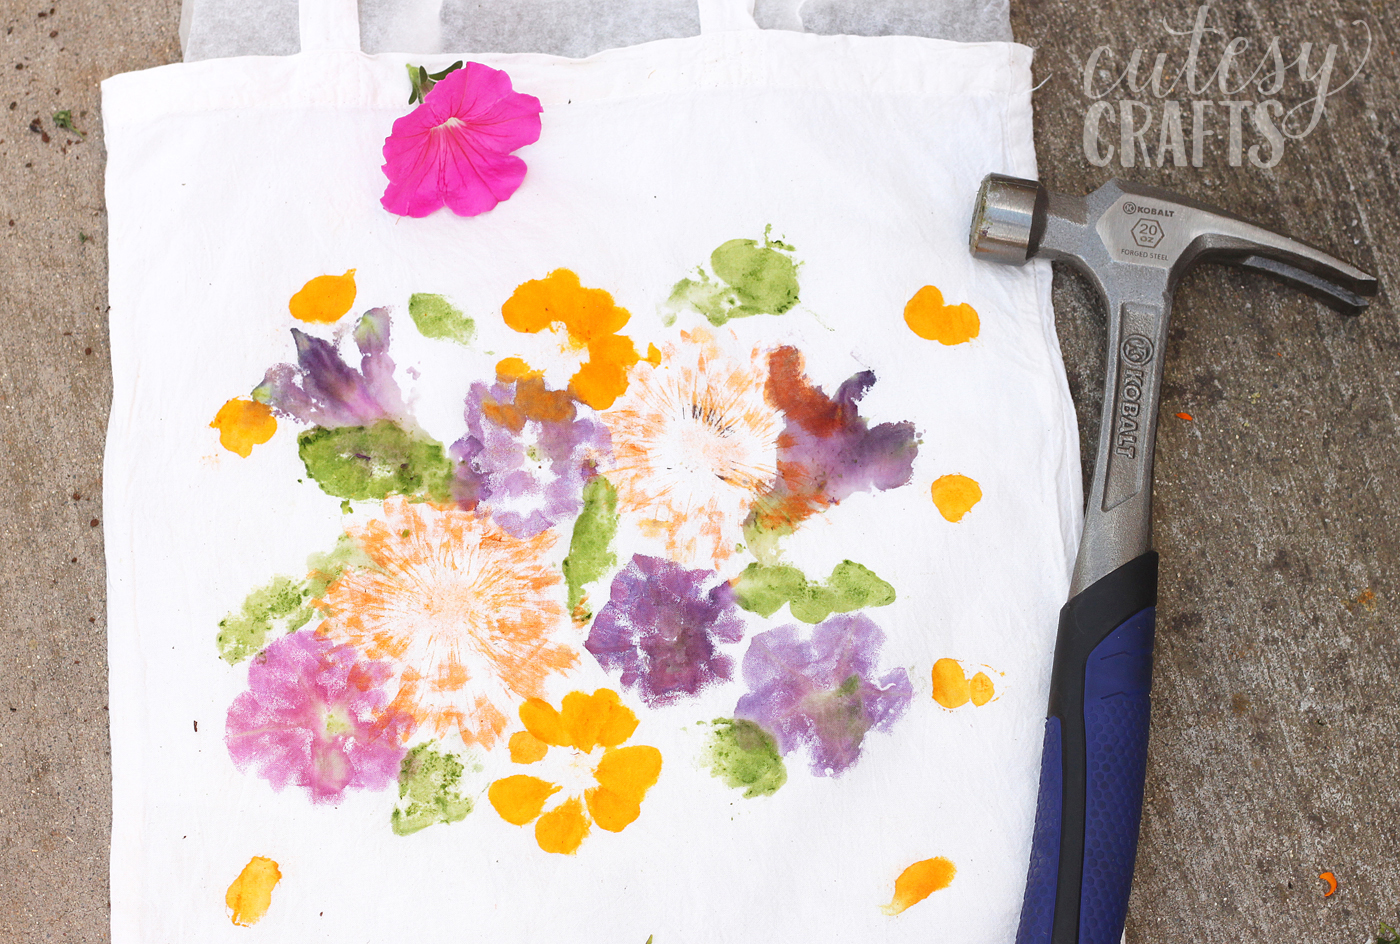 Did you know that you can dye fabric by pounding flowers? This unique craft project makes a perfect Mother's Day gift - and the kids will love creating it!